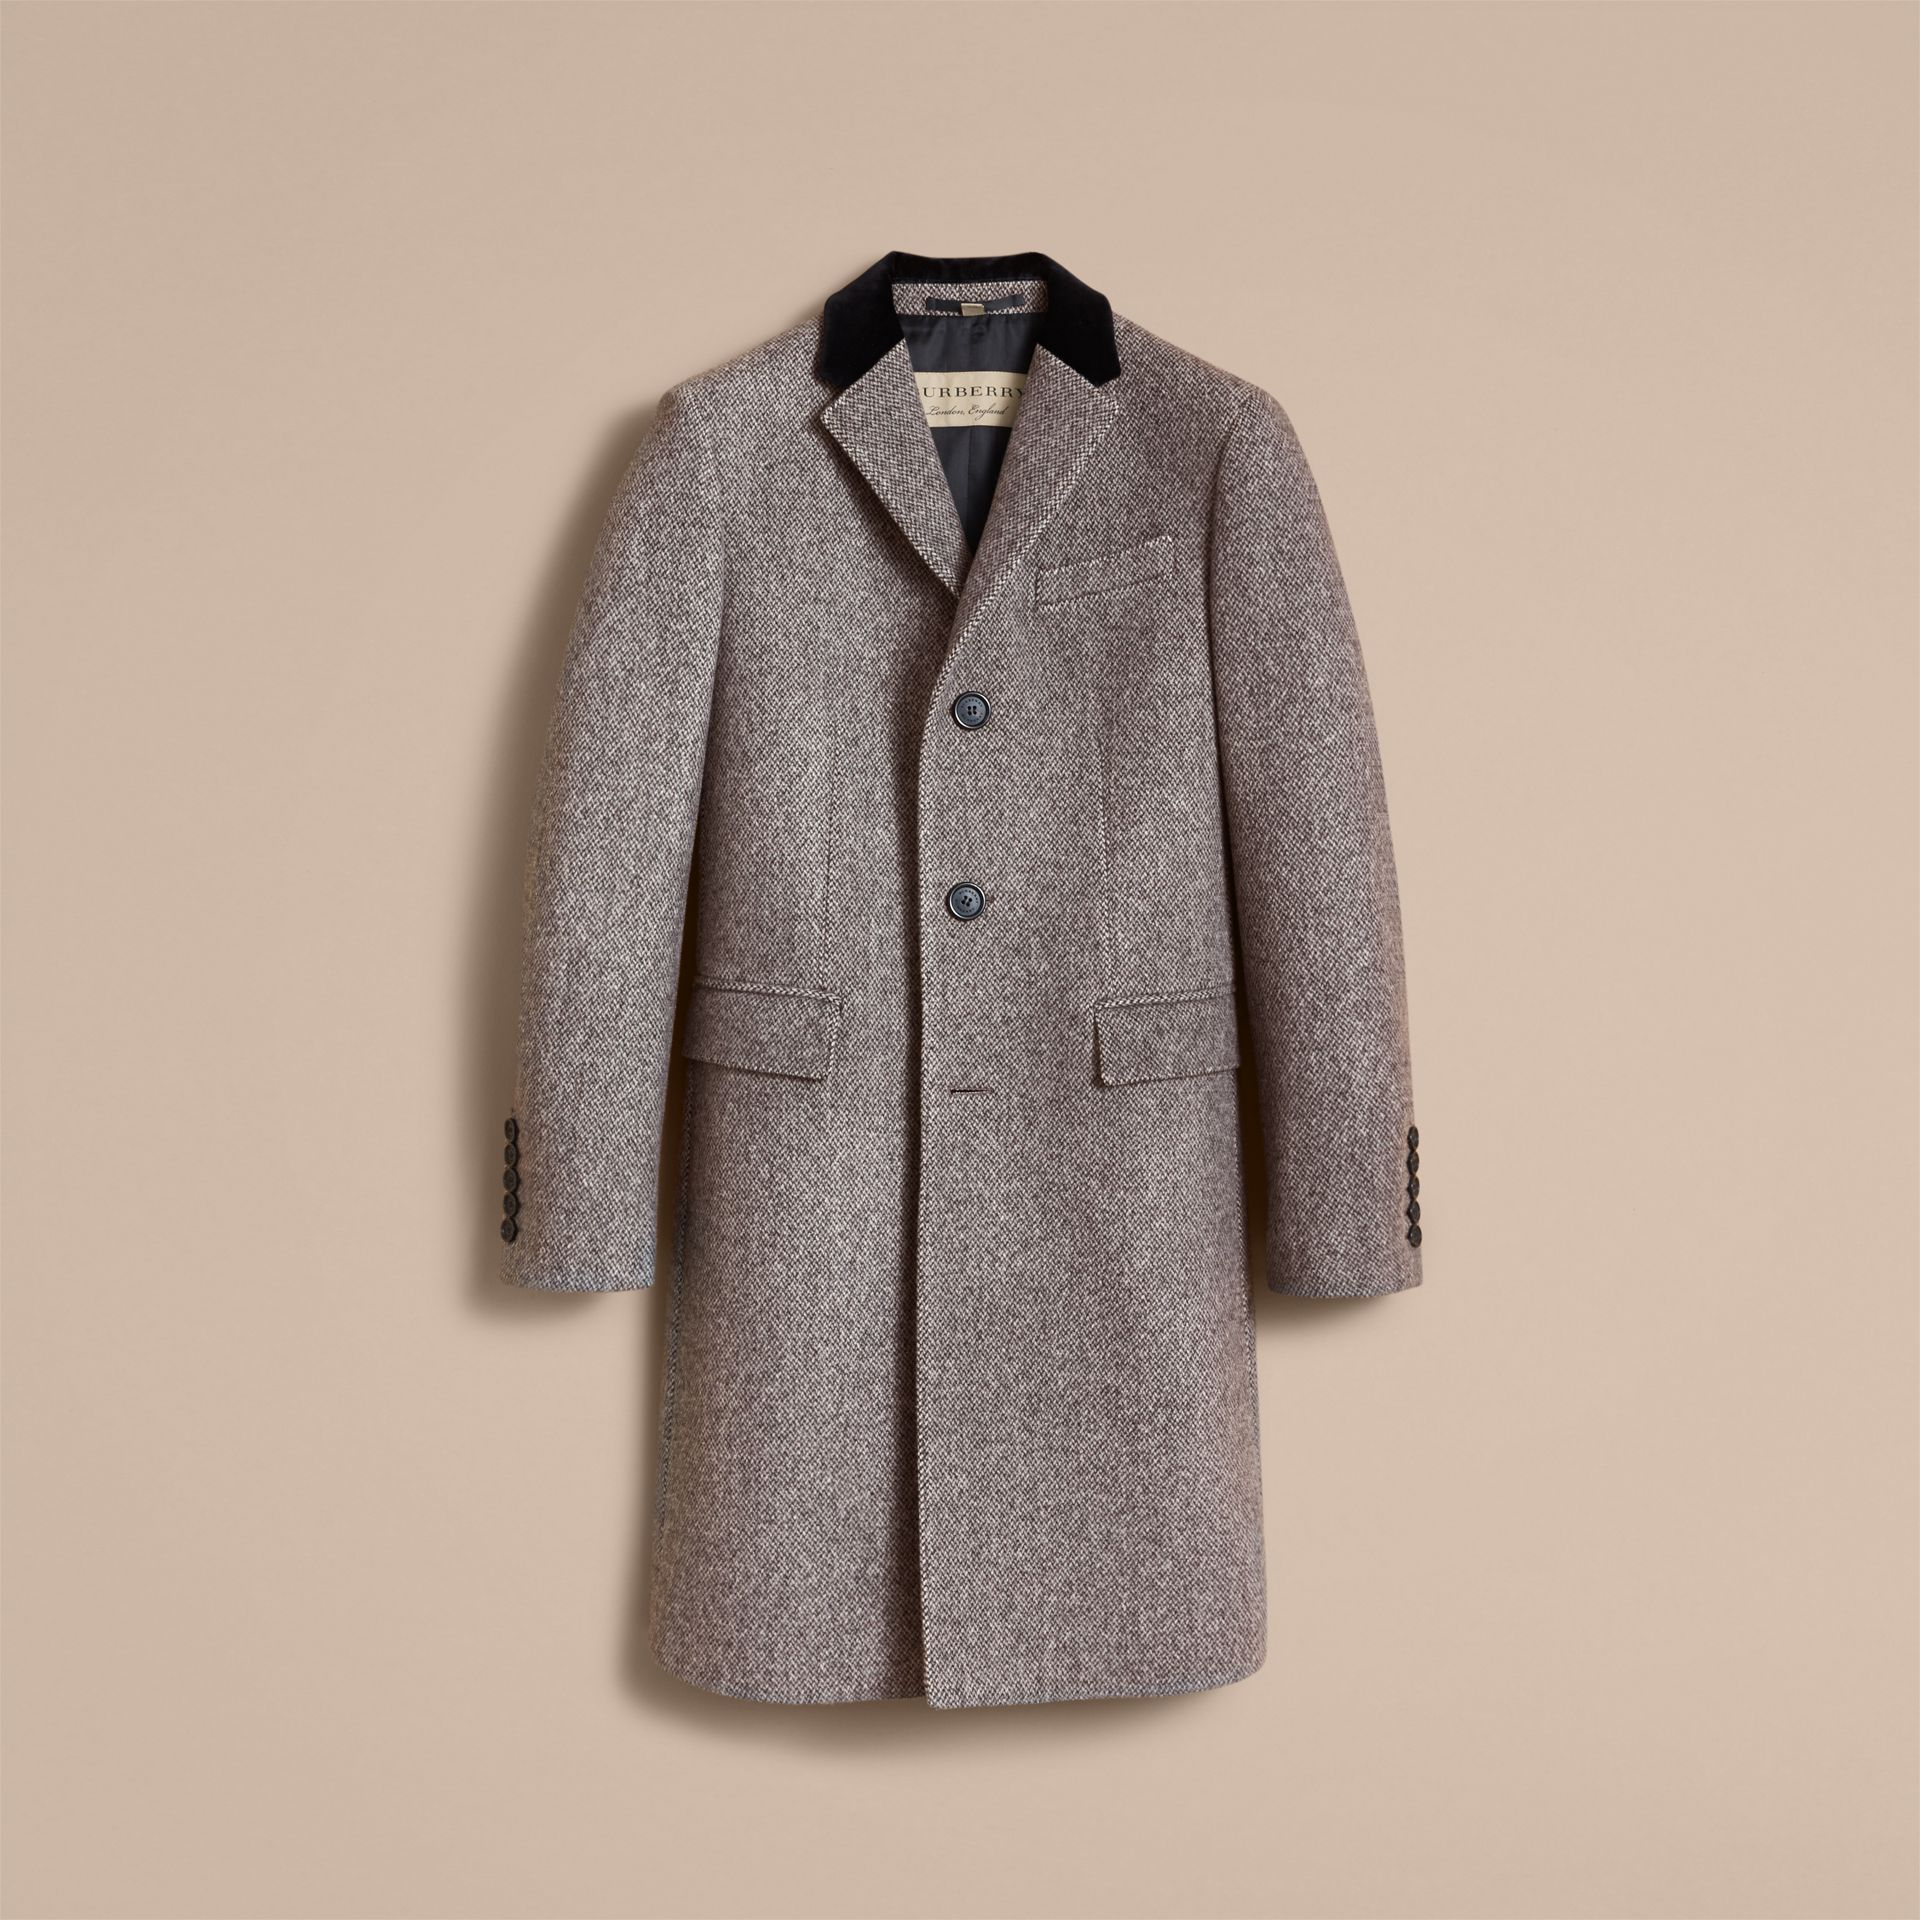 Velvet Collar Wool Tweed Topcoat - Men | Burberry - gallery image 4